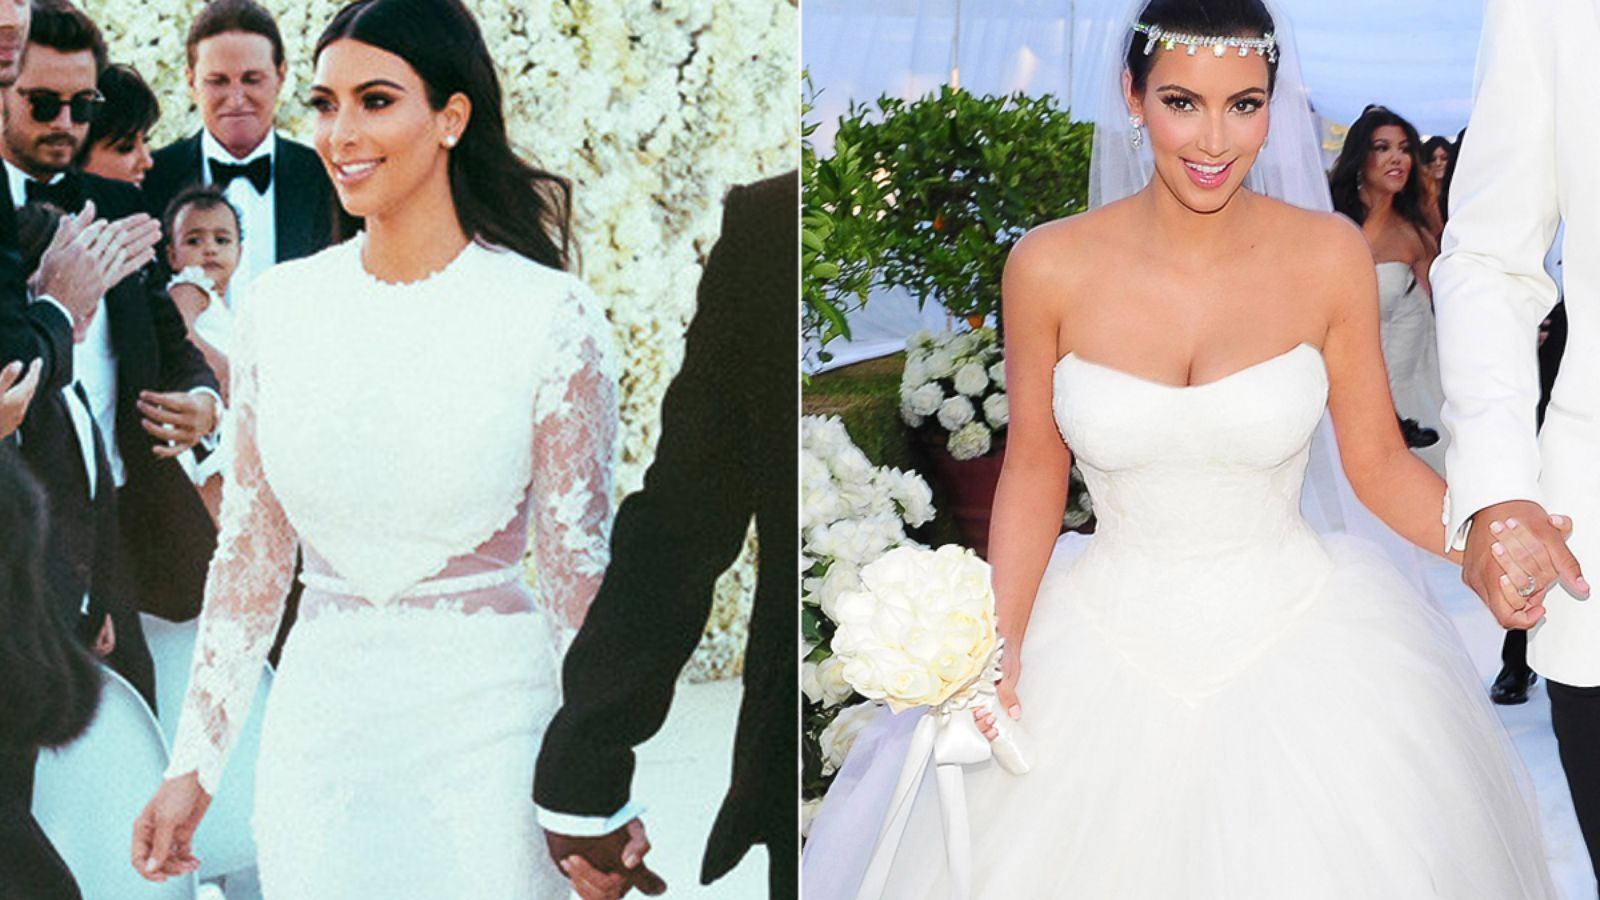 Ð?аÑ?Ñ?инки по запÑ?оÑ?Ñ? kim kardashian wedding